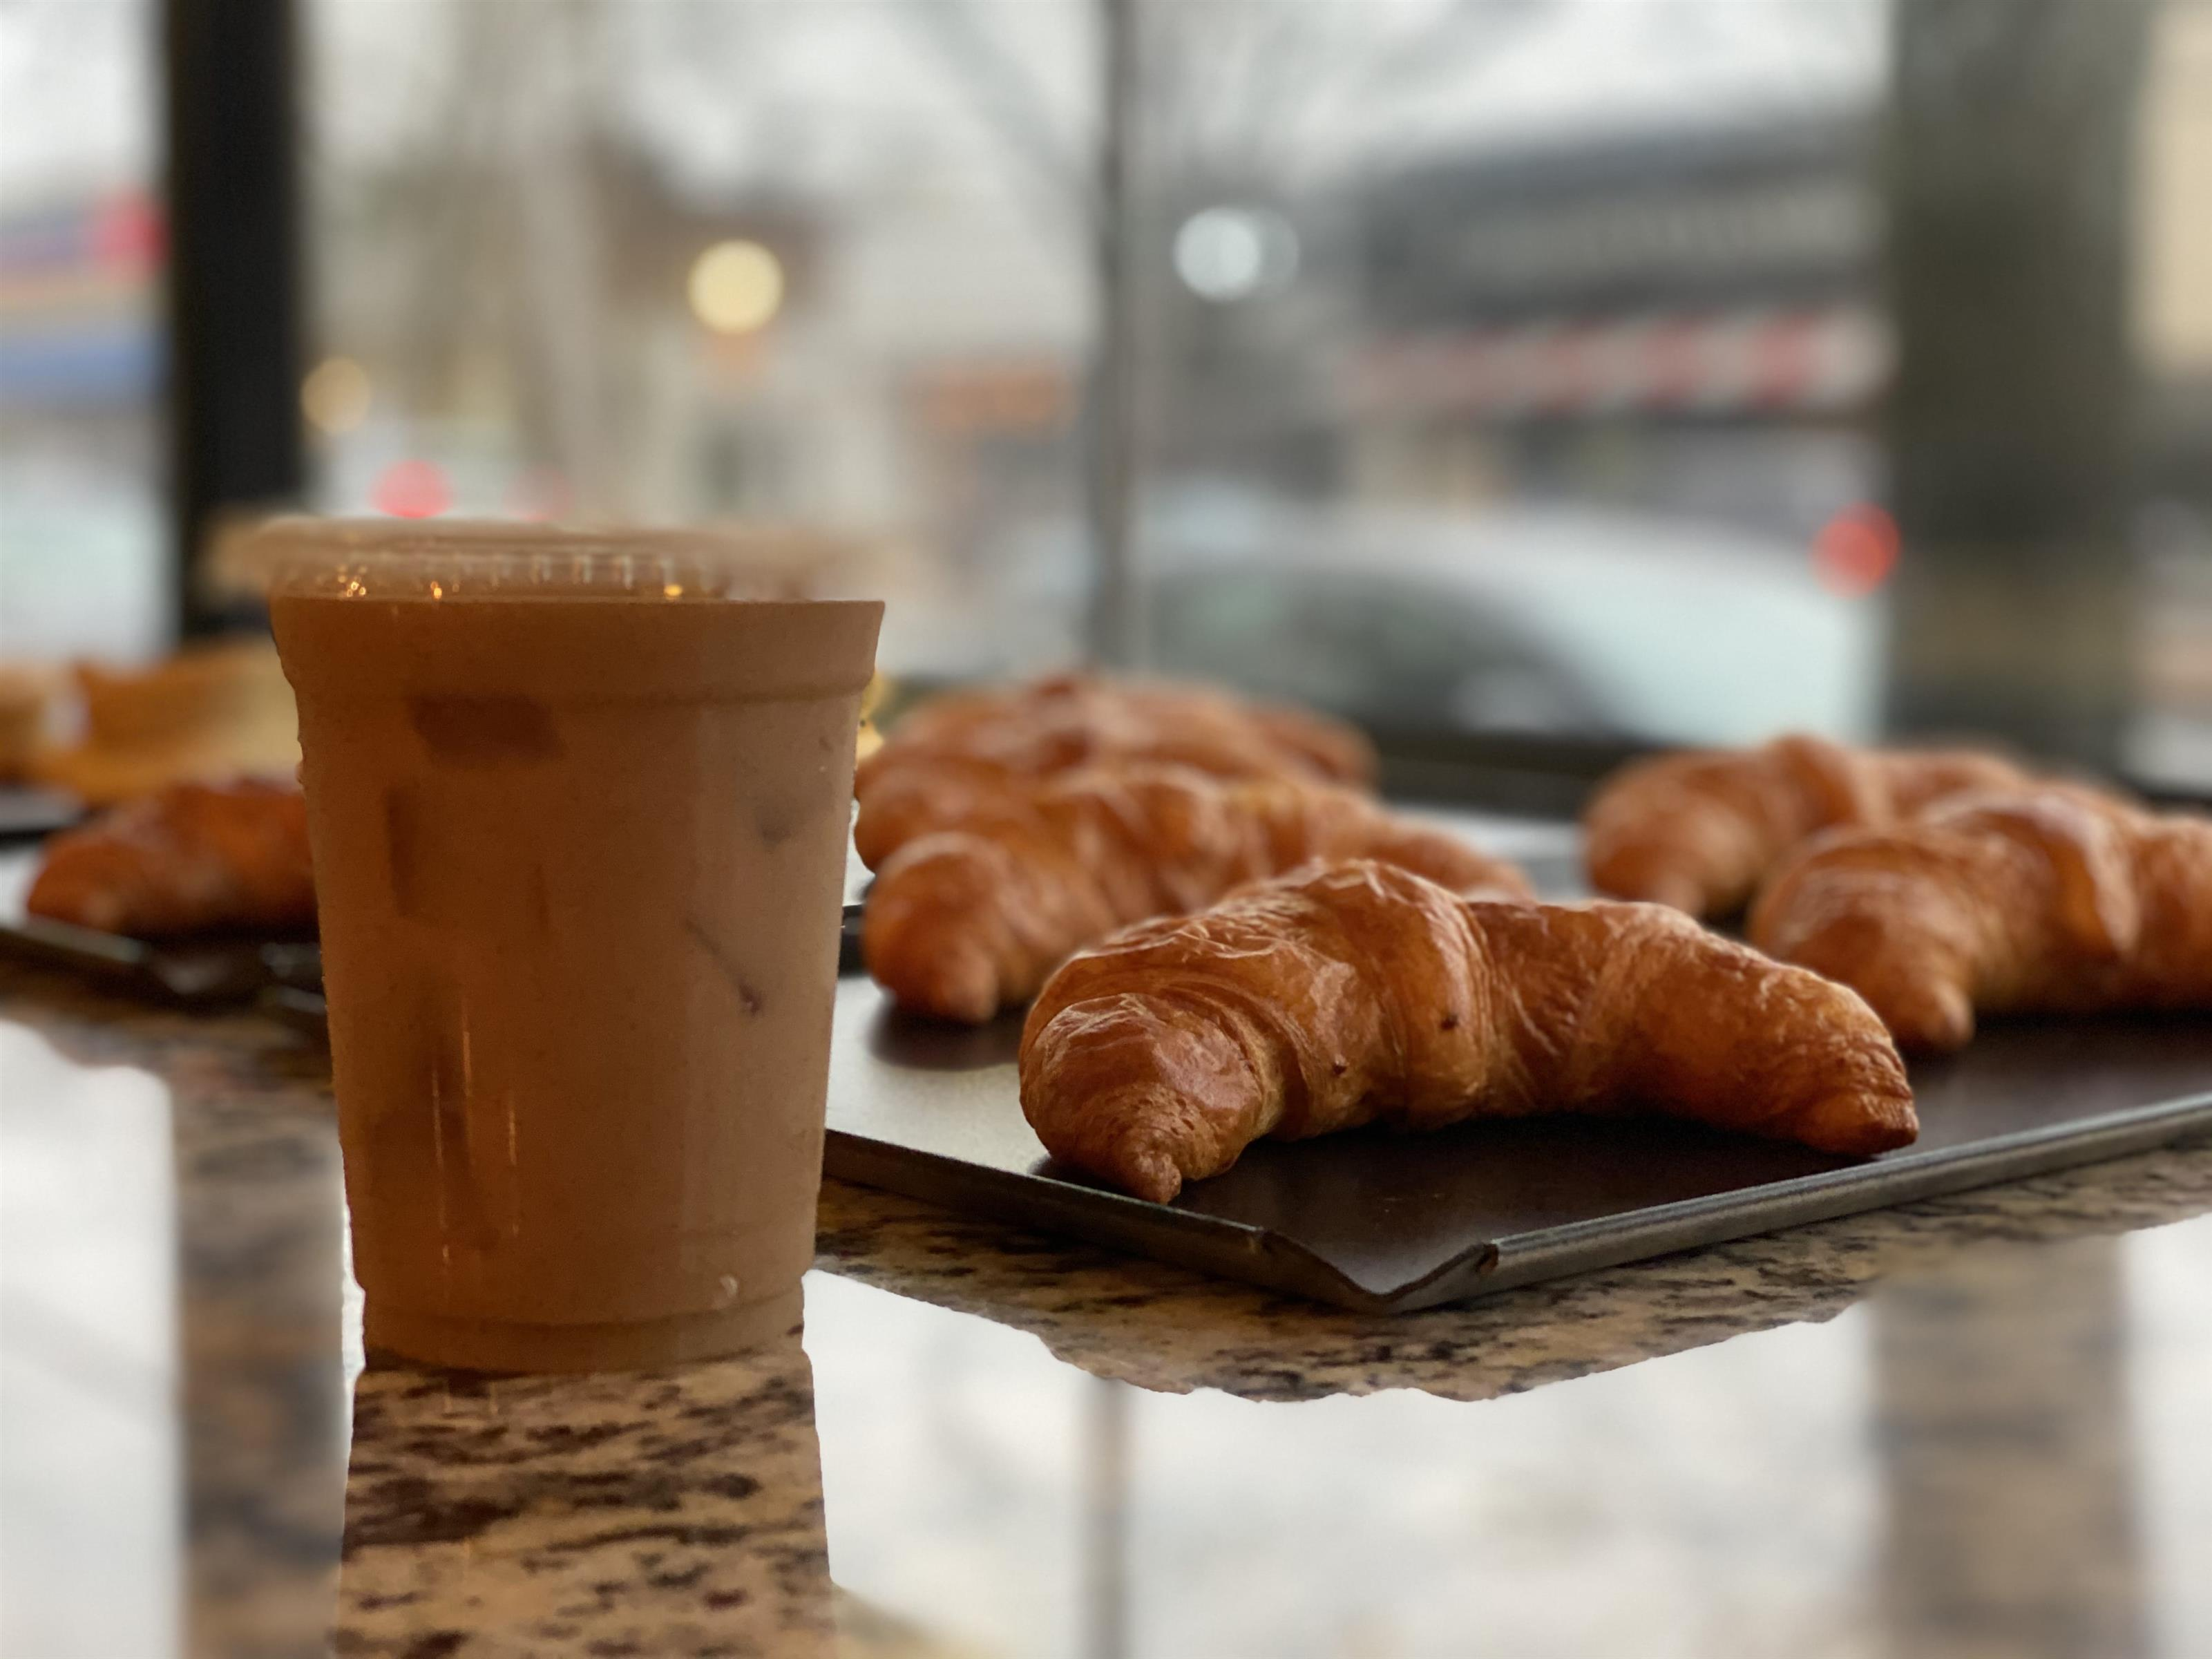 cup of iced coffee on a counter next to a tray of baked croissants